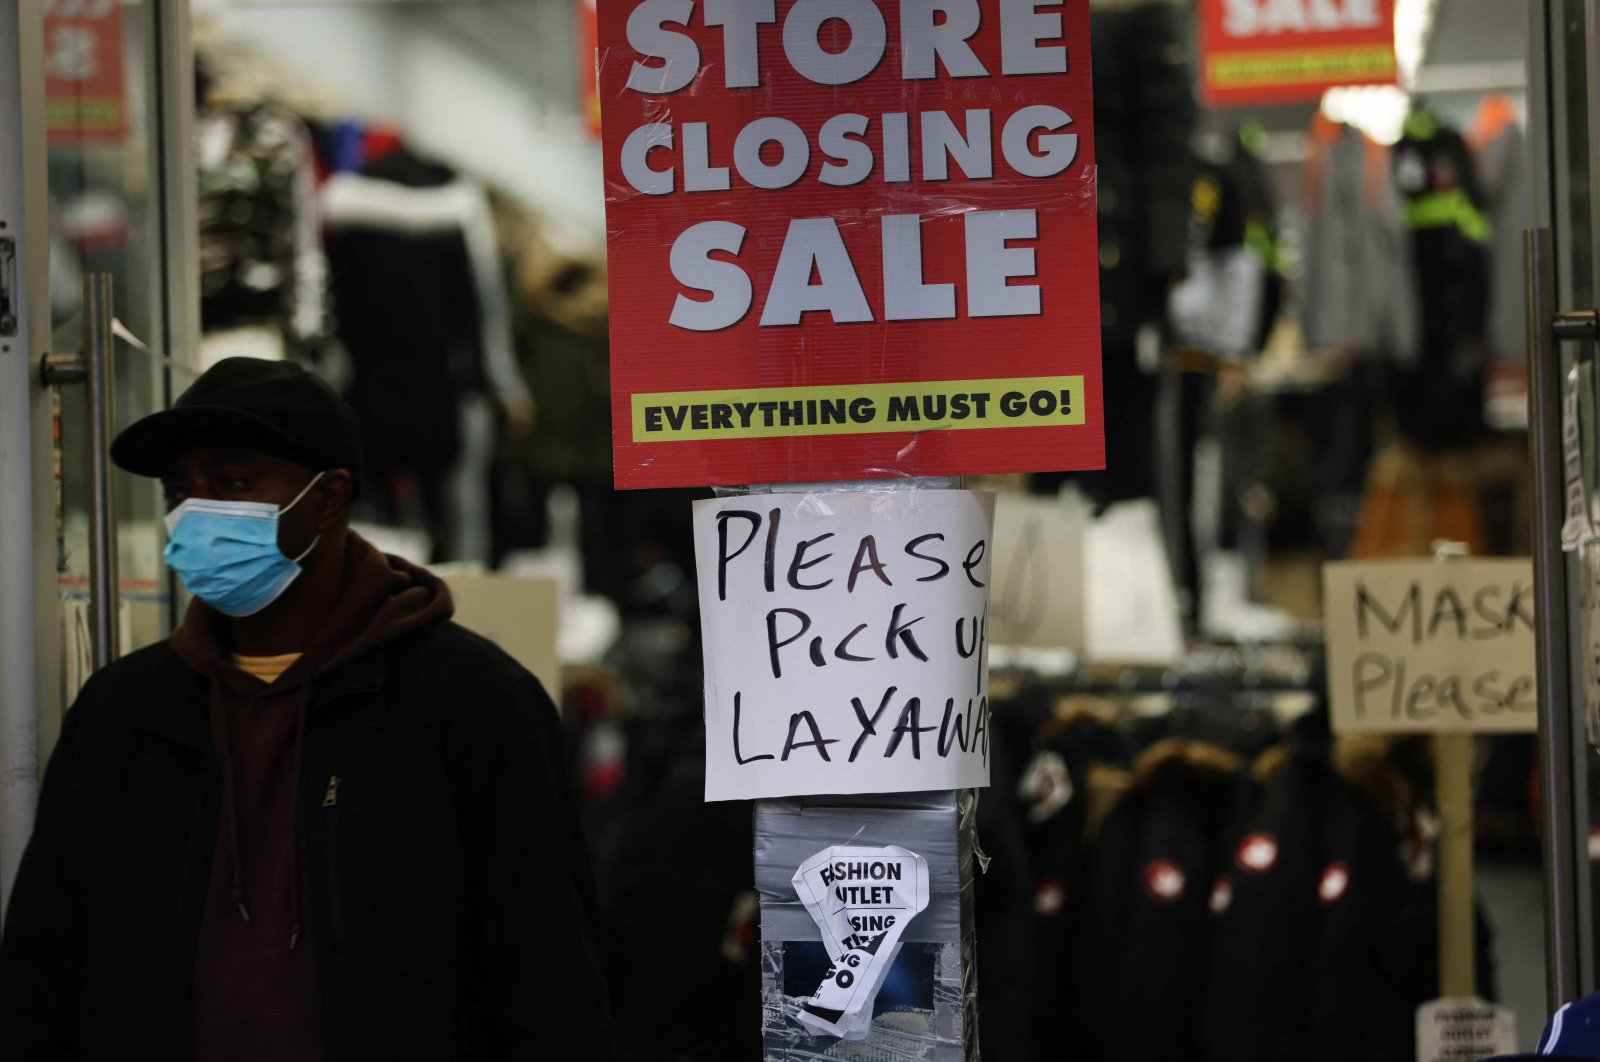 Sale signs are displayed in the window of a business in Brooklyn in New York City, U.S., Dec. 1, 2020. (AFP Photo)